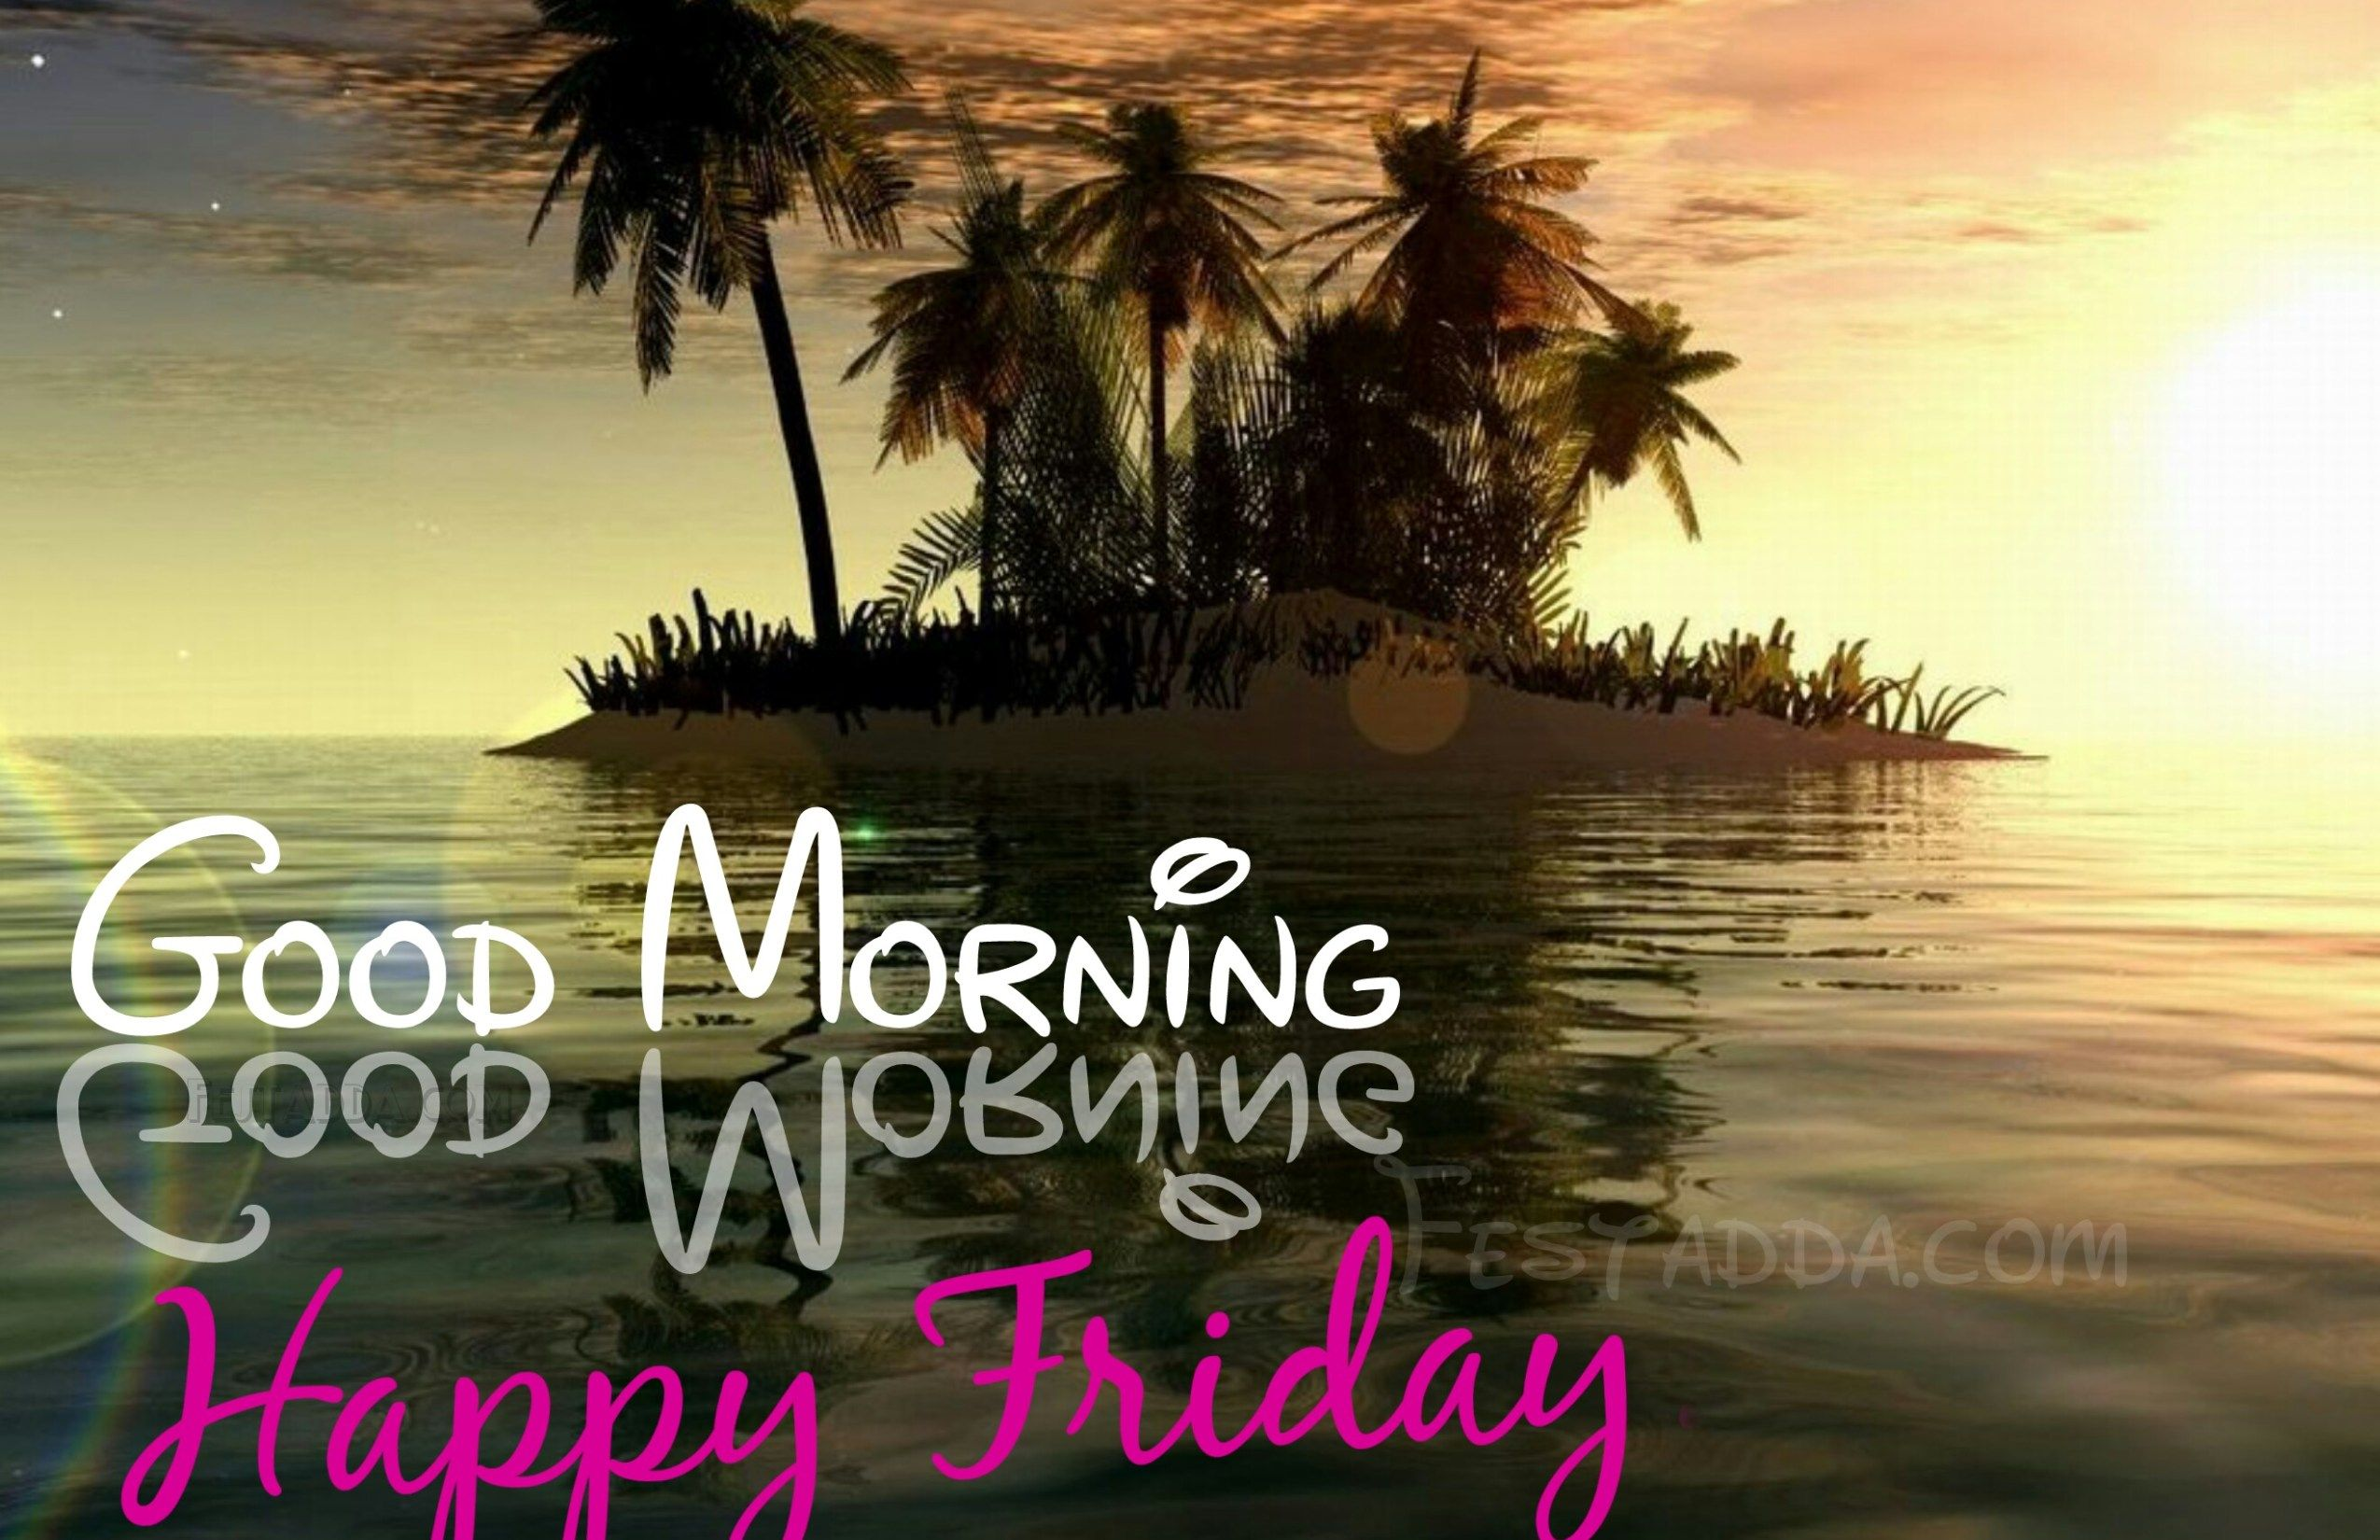 Happy Friday Gif With Sound Quotes Good Morning Friday Wishes For